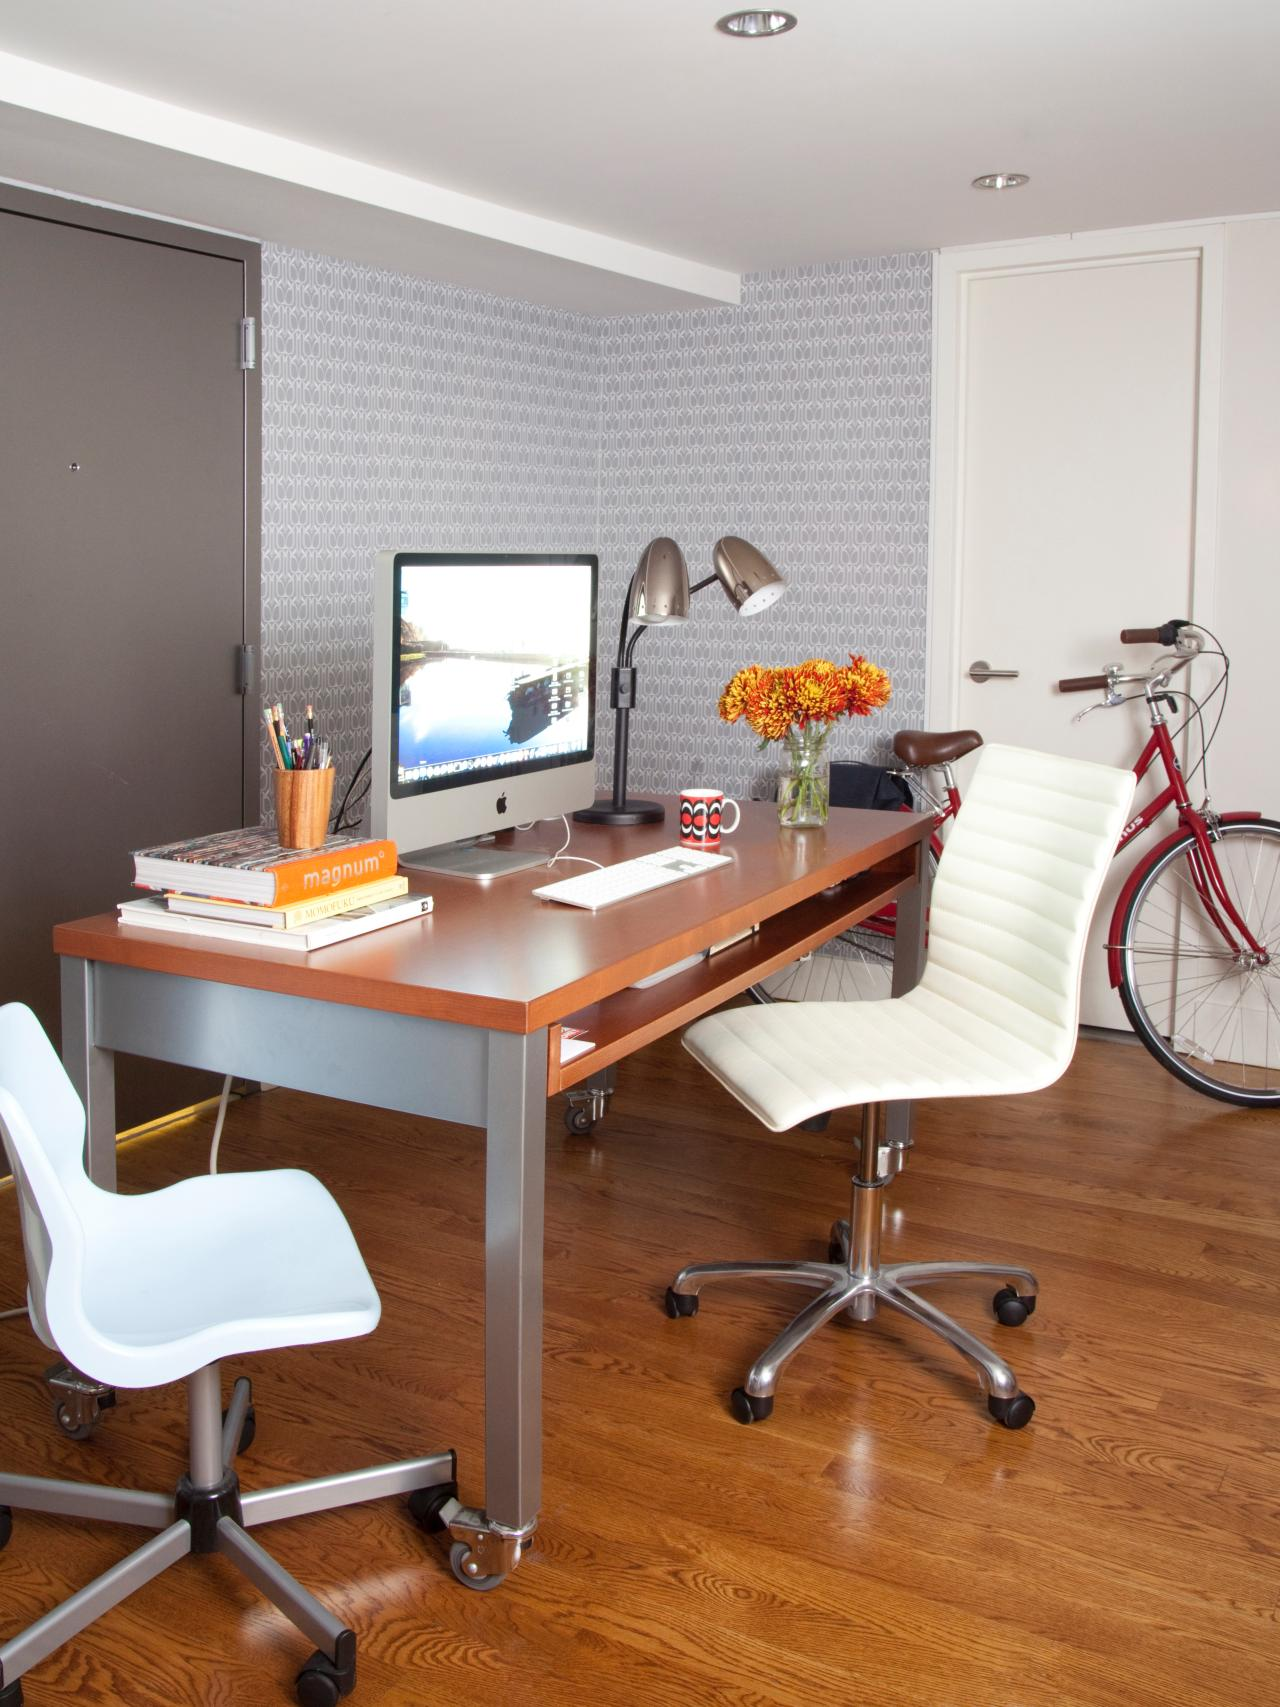 bedroom office ideas.  Small Space Ideas for the Bedroom and Home Office HGTV